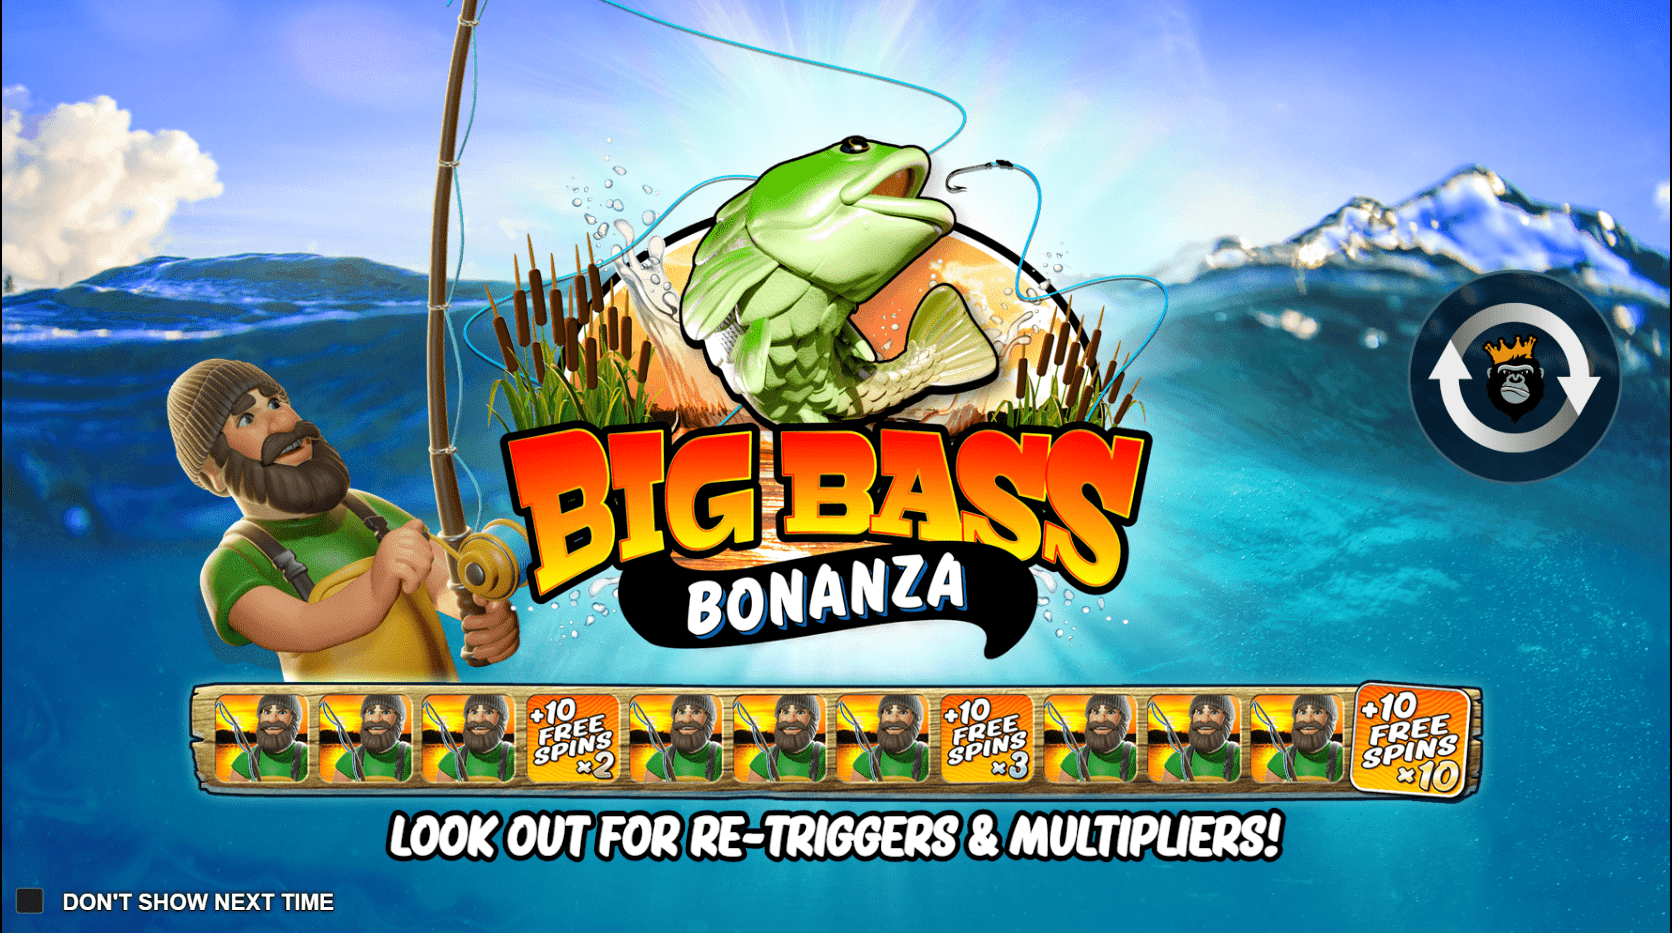 Big Bass Bonanza Video Slot welcome screen